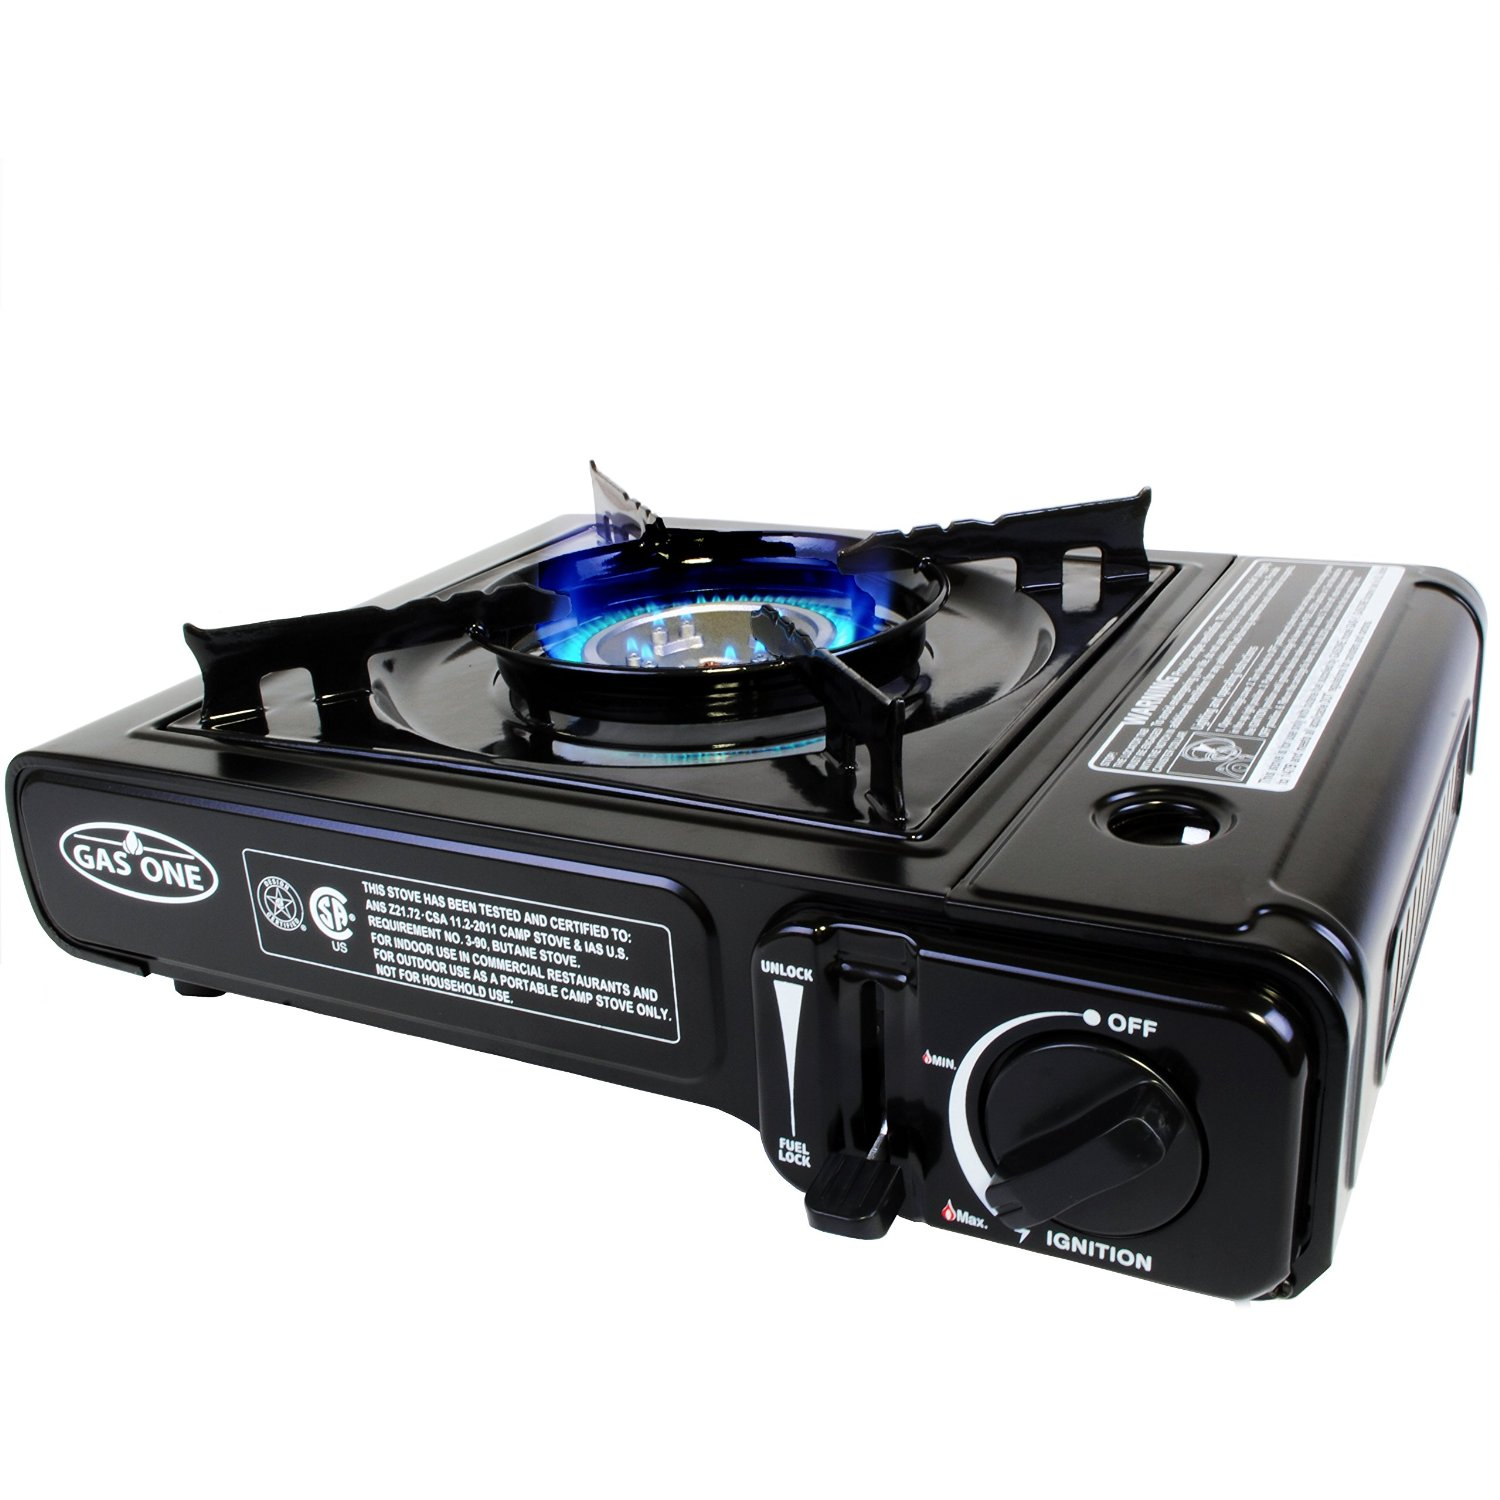 GAS ONE GS-3000 Portable Gas Stove with Carrying Case, 9,000 BTU, CSA Approved, Black by GAS ONE